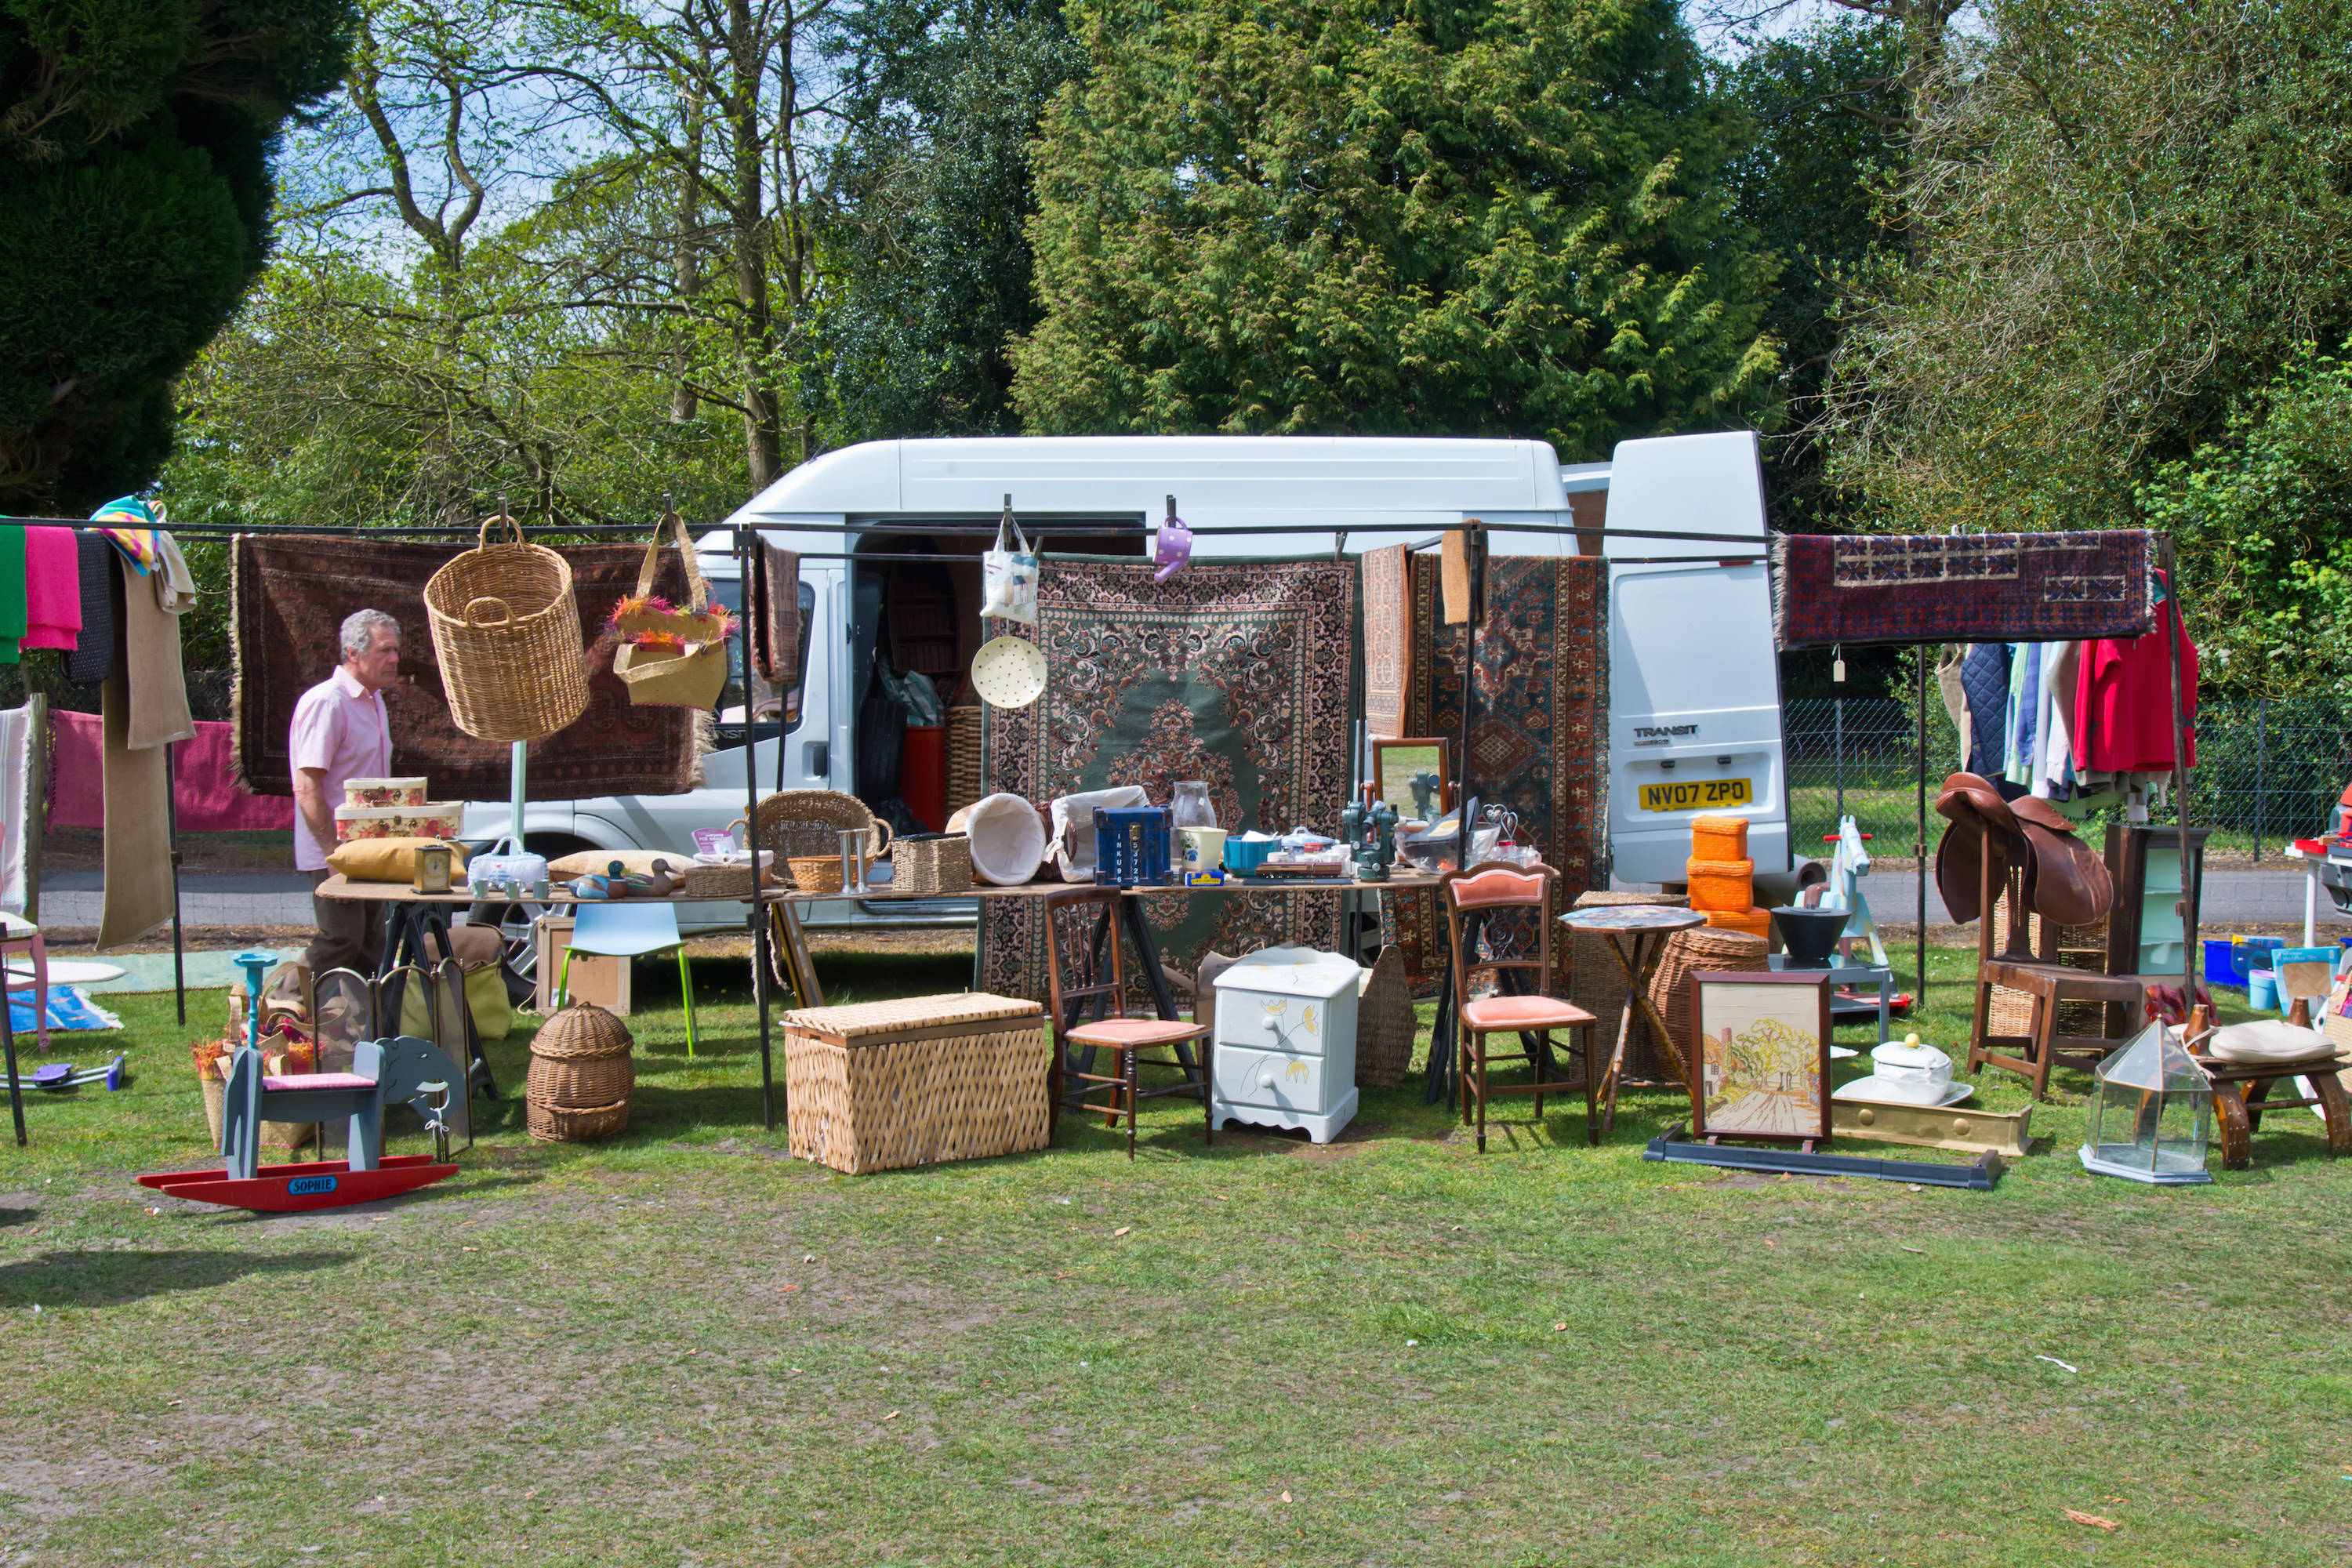 Sign up for the Hasbrouck Heights Town-wide Garage Sale